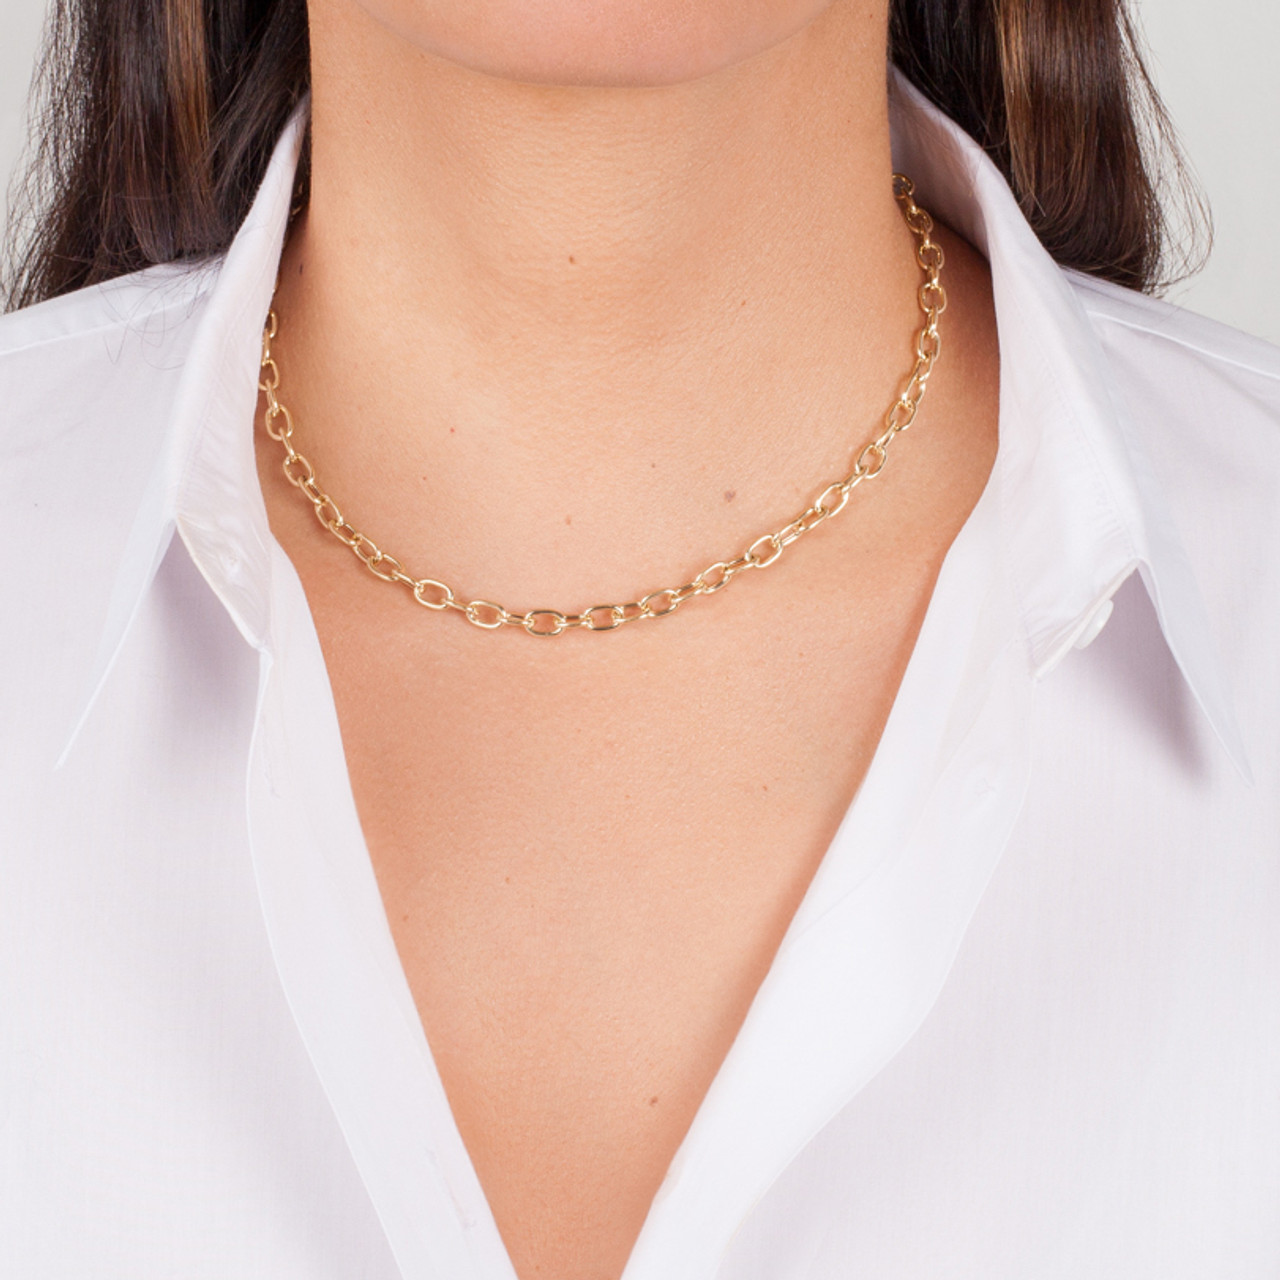 14k Gold Anchor Link Chain Necklace